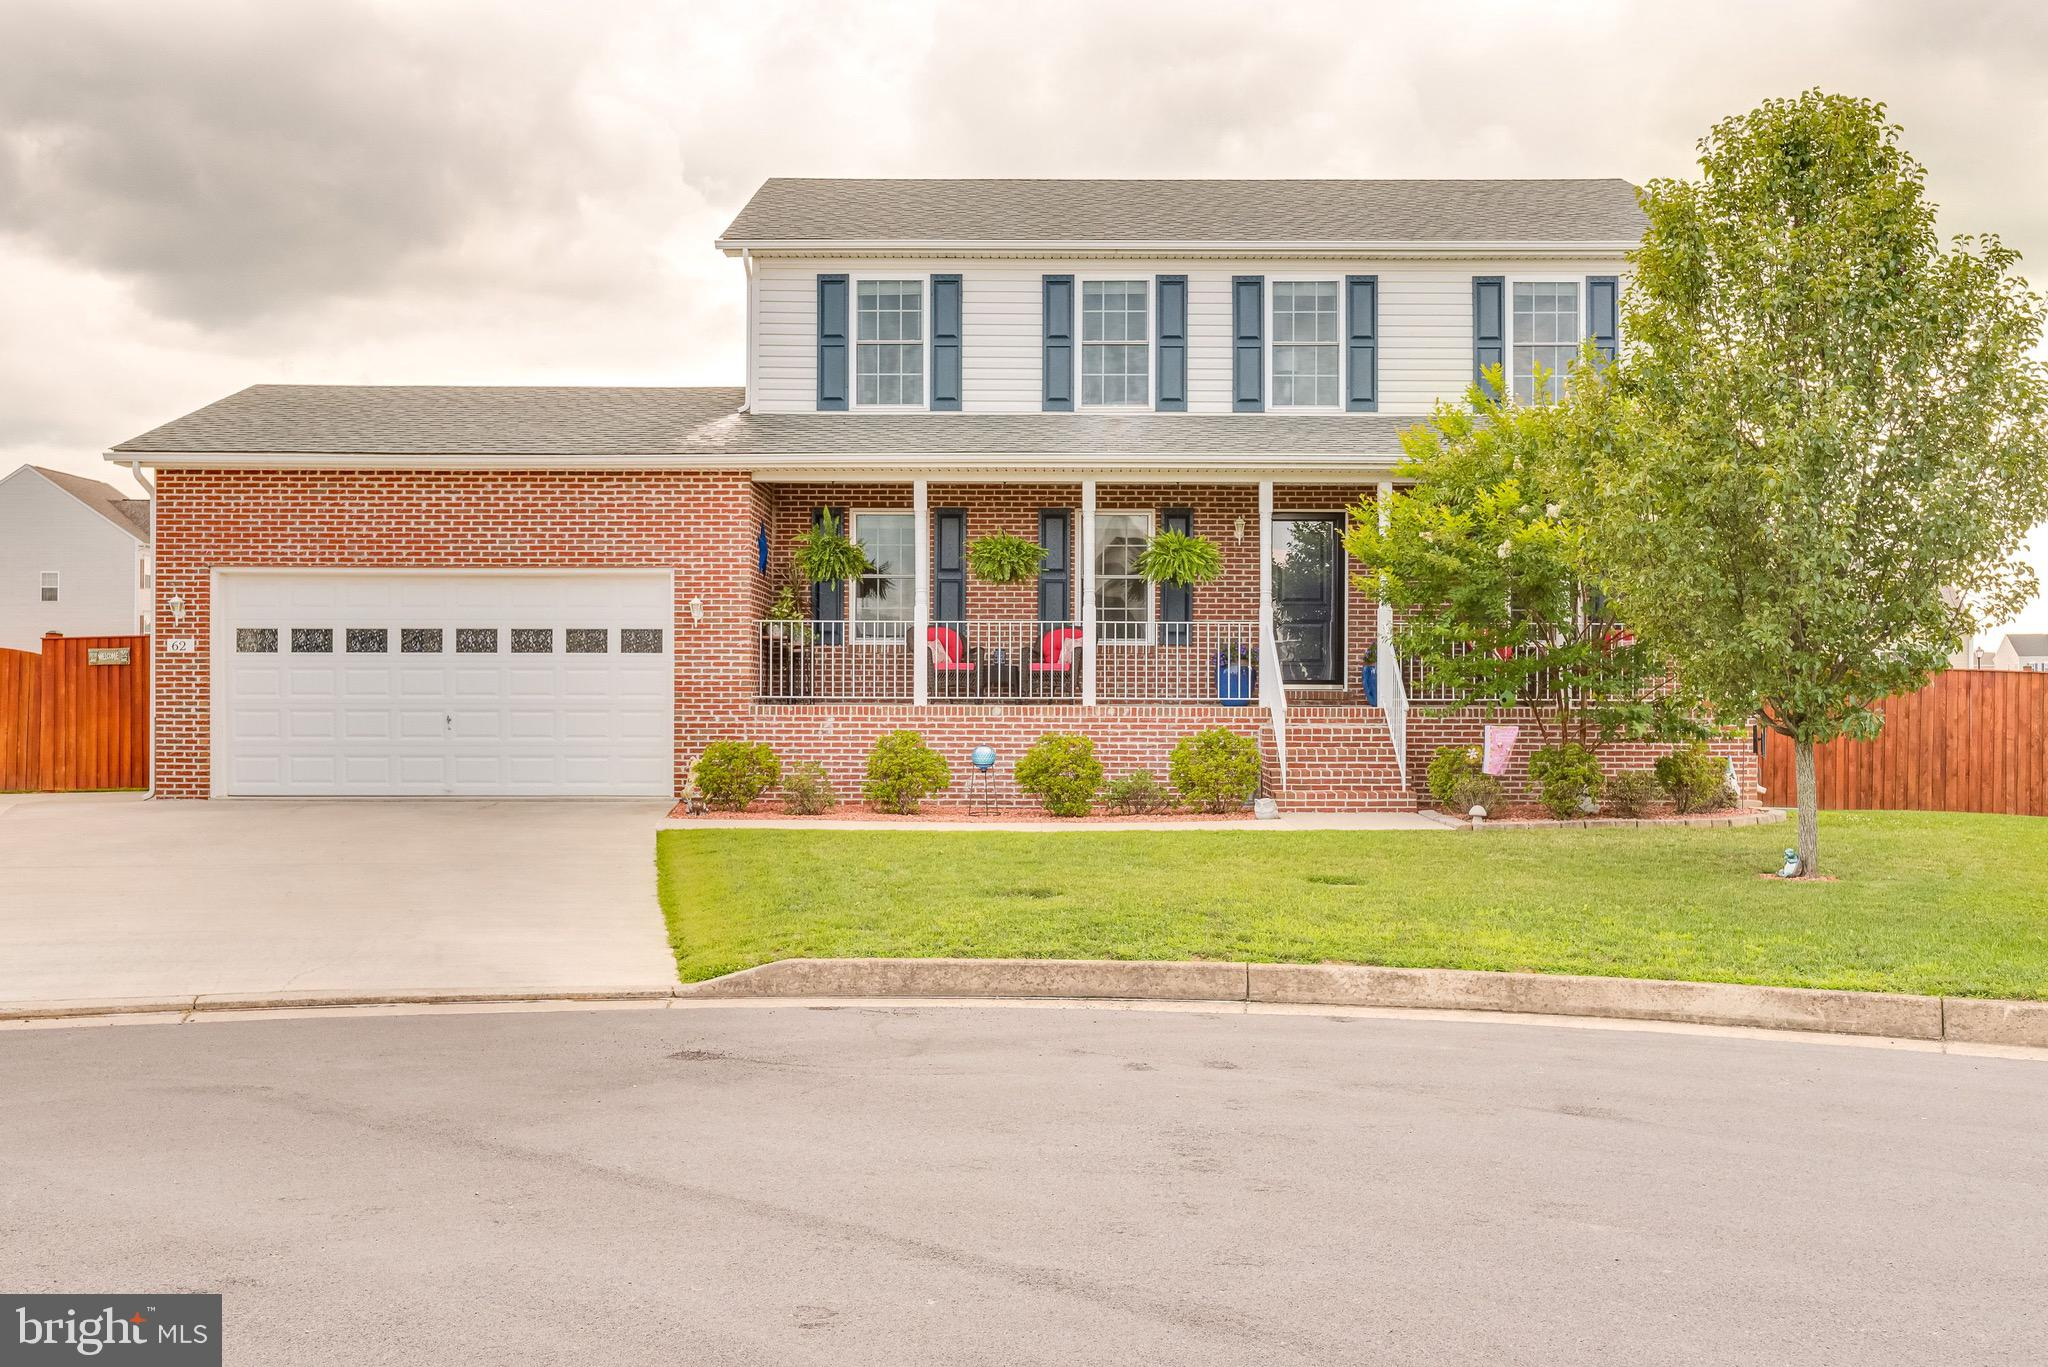 Look no more for your new home! This beautiful 4 bedroom, 2 1/2 bathroom colonial is situated on a c